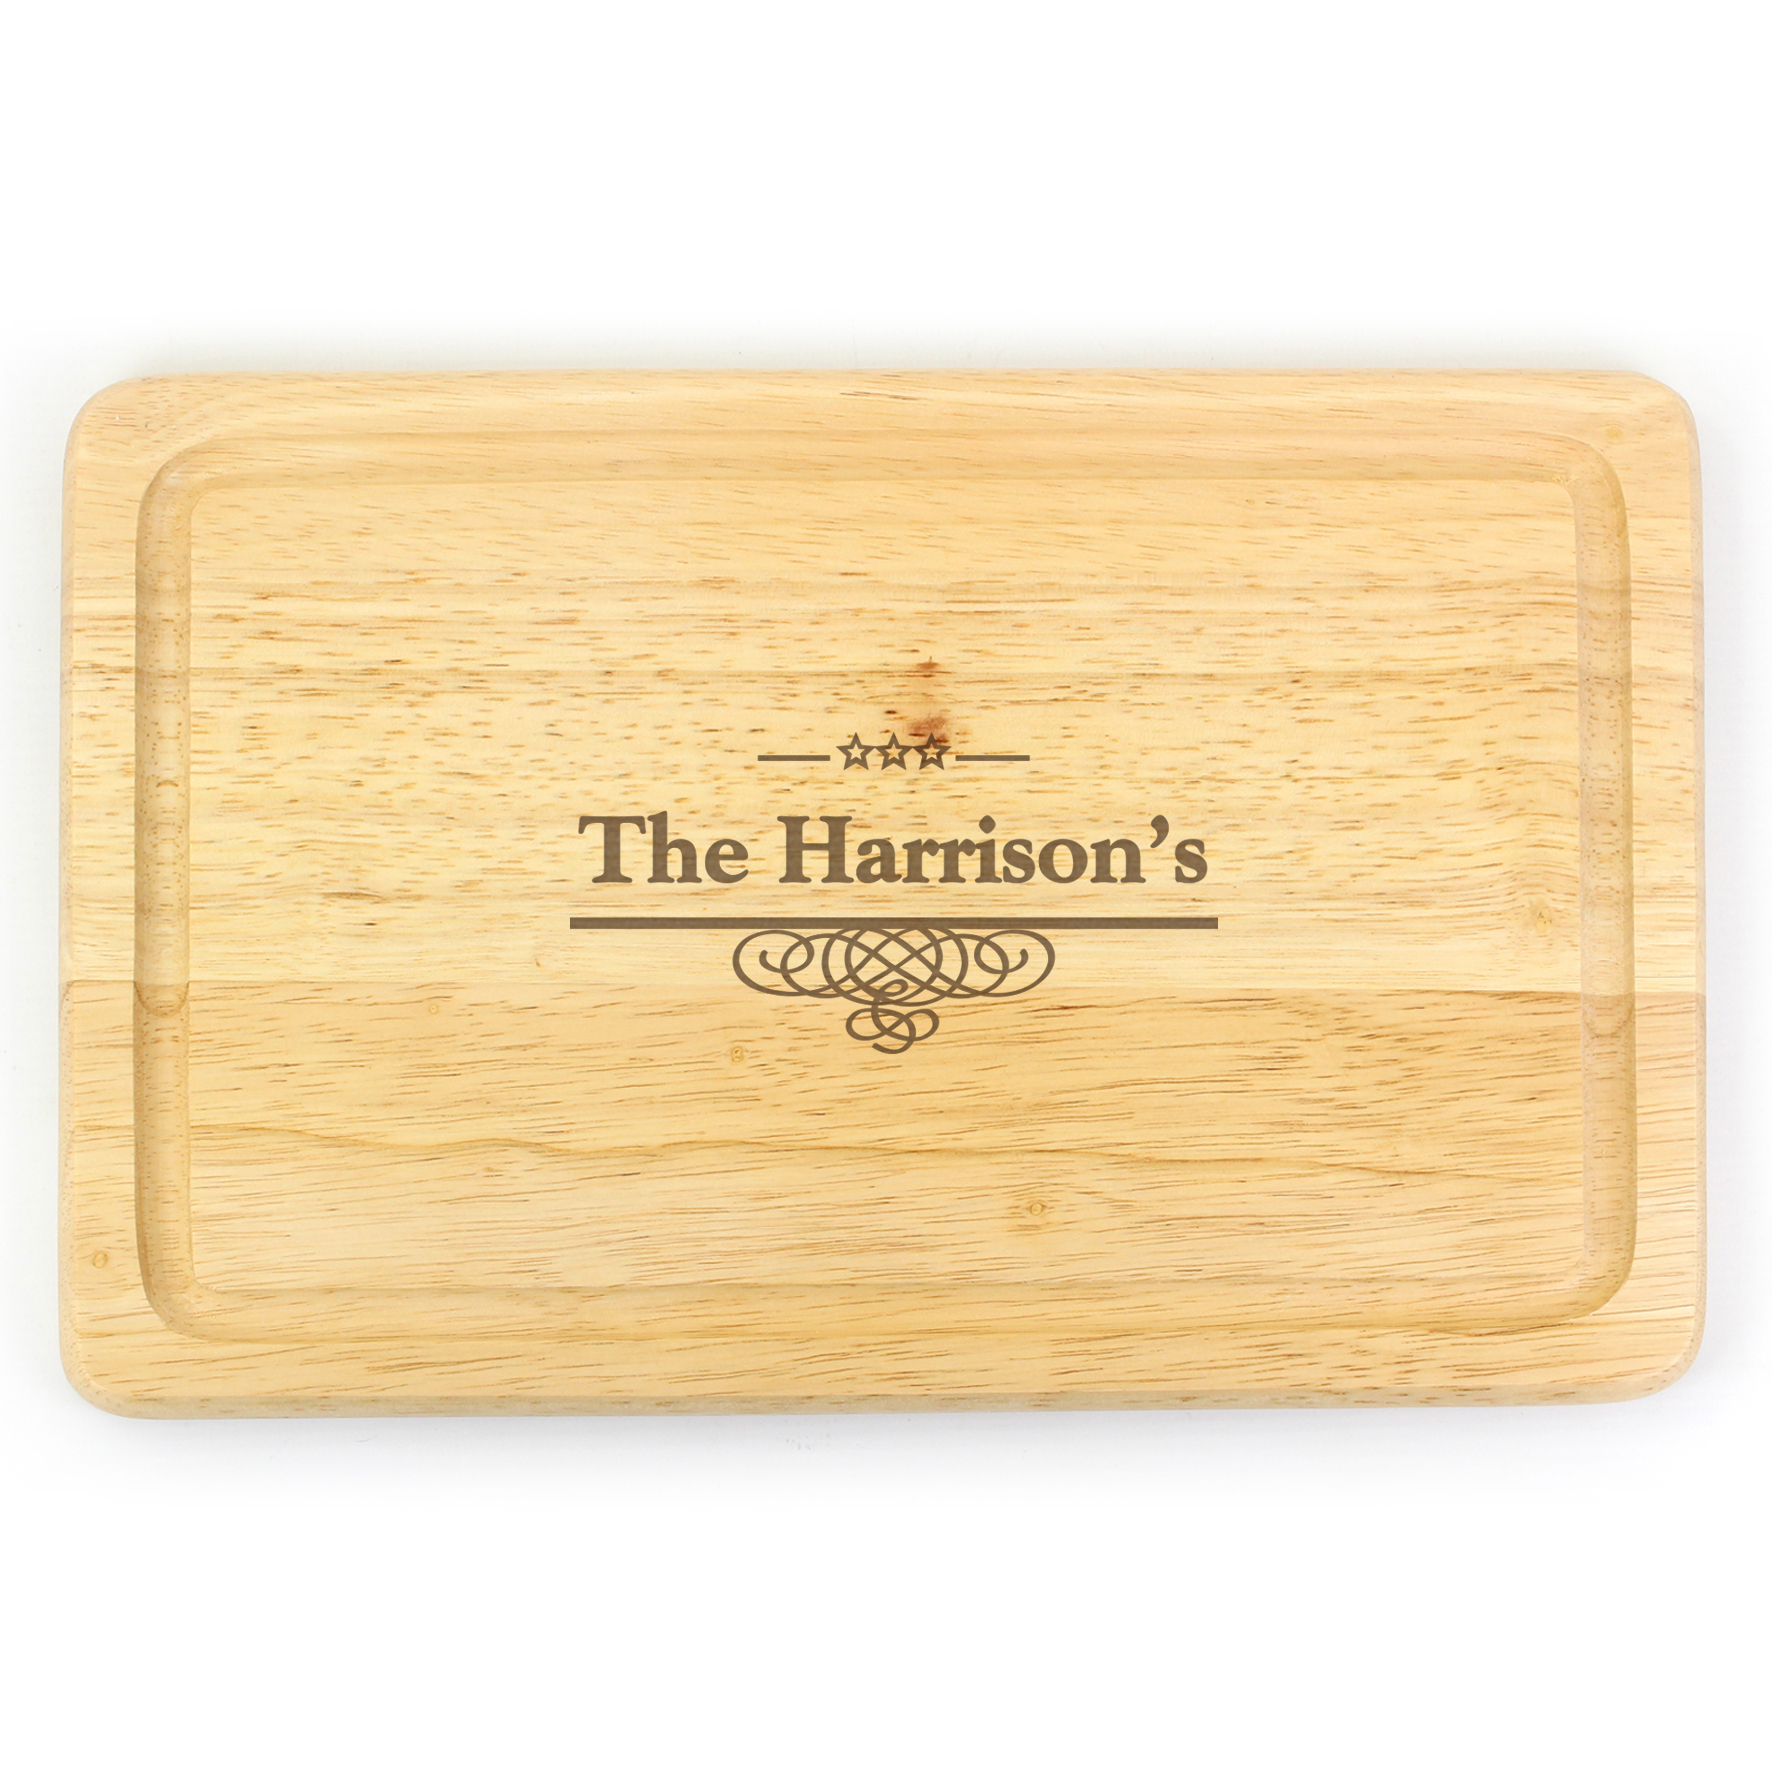 Engraved Decorative Large Chopping Board